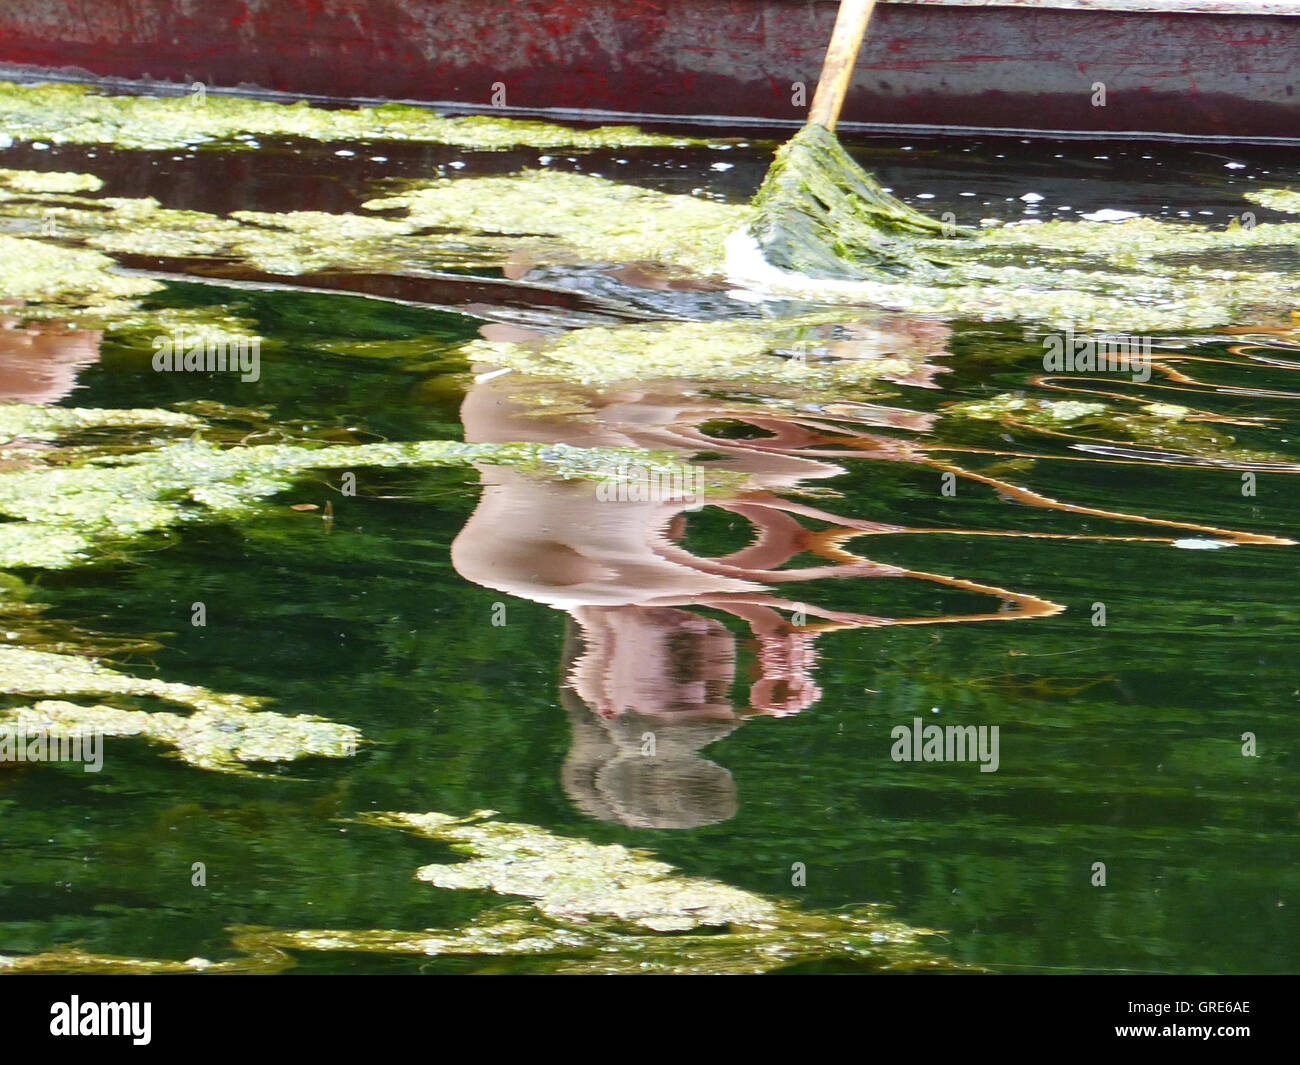 Distortion Of The Mirror Image In The Water By Wave Motion - Stock Image